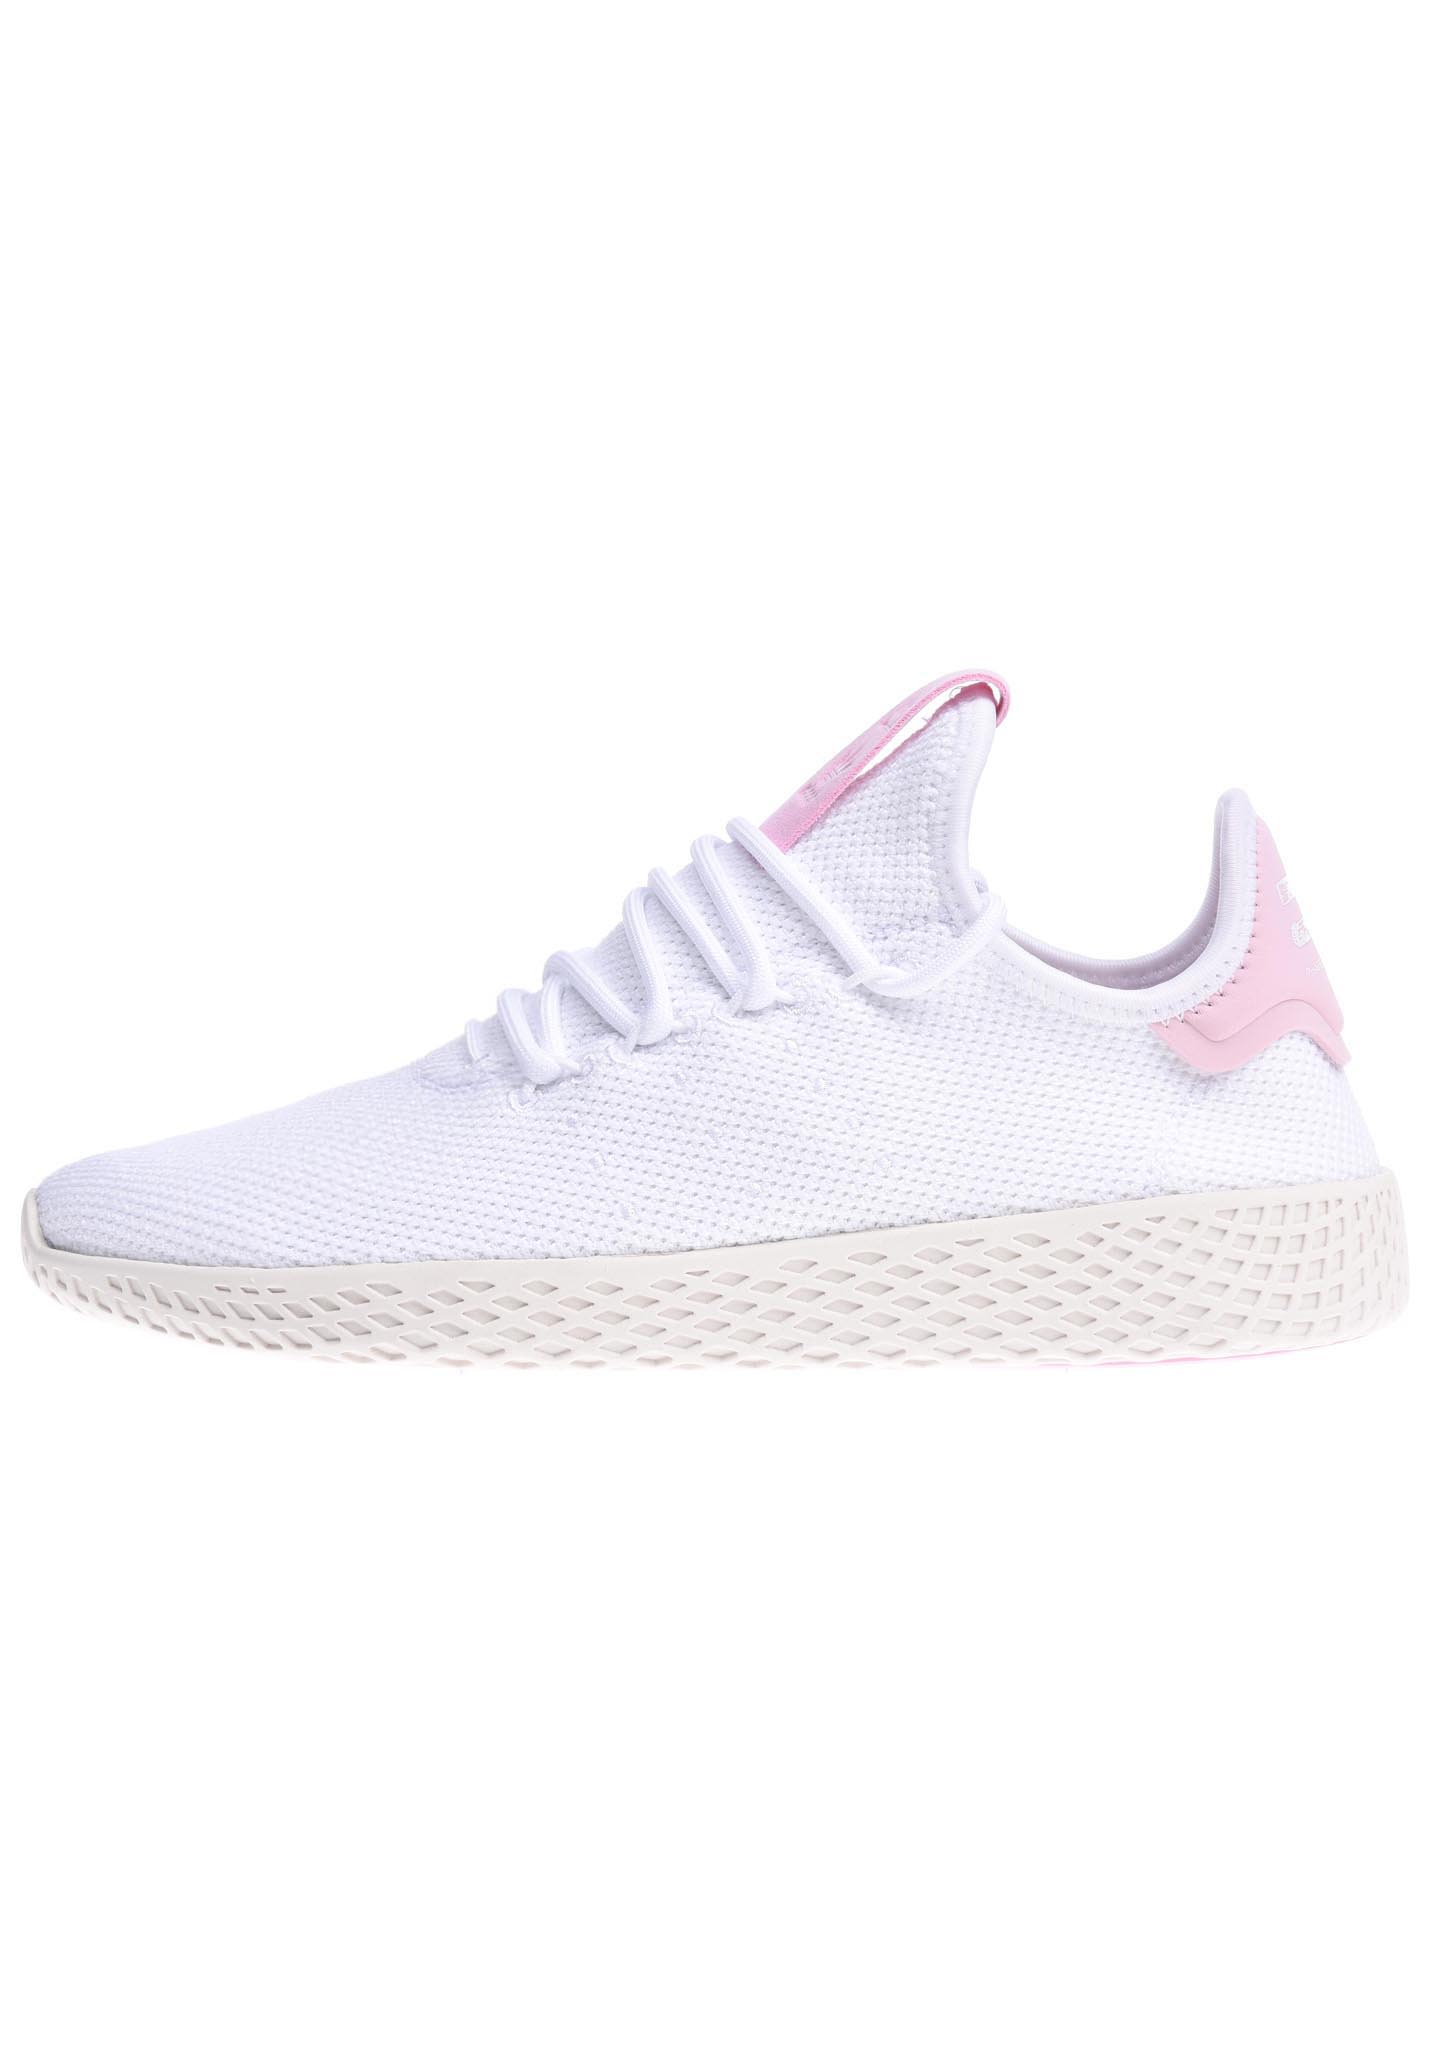 1858b40d1a3 ADIDAS ORIGINALS Pharrell Williams Tennis Hu - Sneakers for Women - White -  Planet Sports